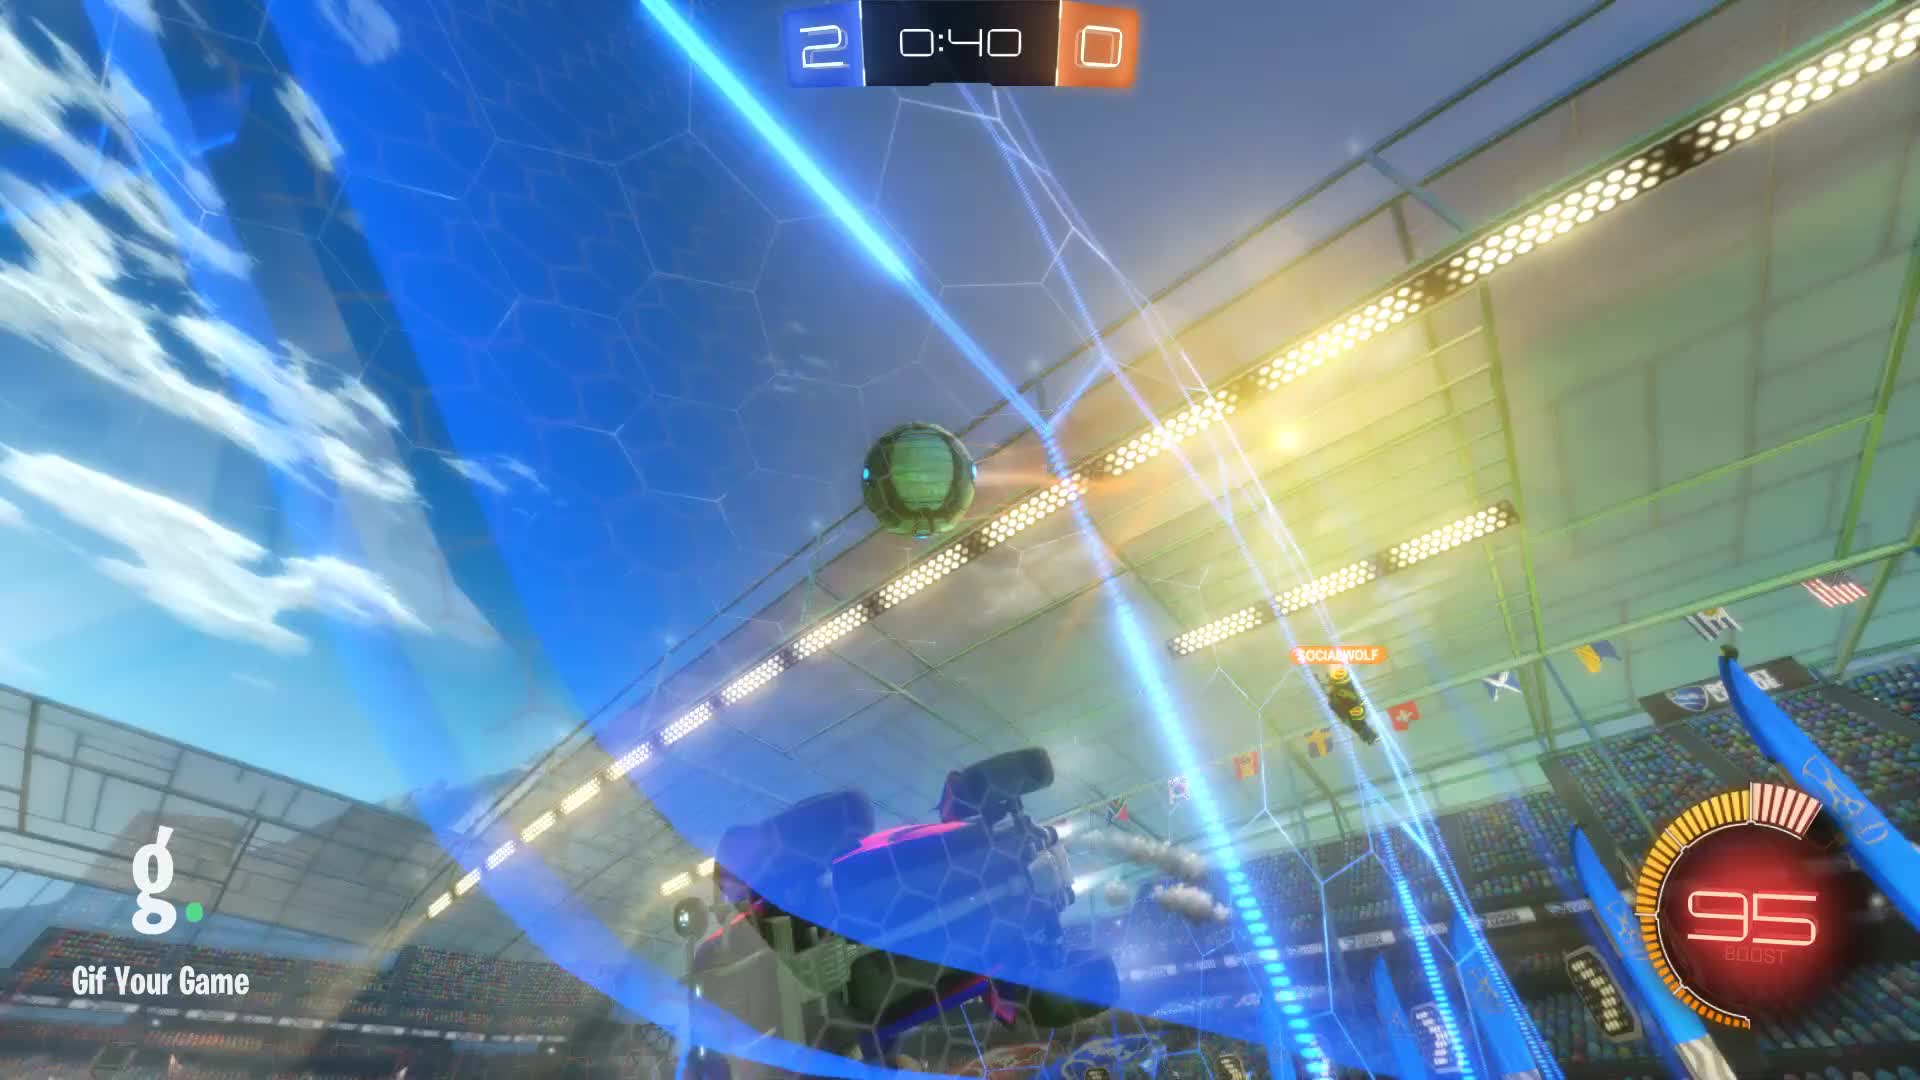 ChiQuiTo, Gif Your Game, GifYourGame, Goal, Rocket League, RocketLeague, Goal 3: ChiQuiTo GIFs